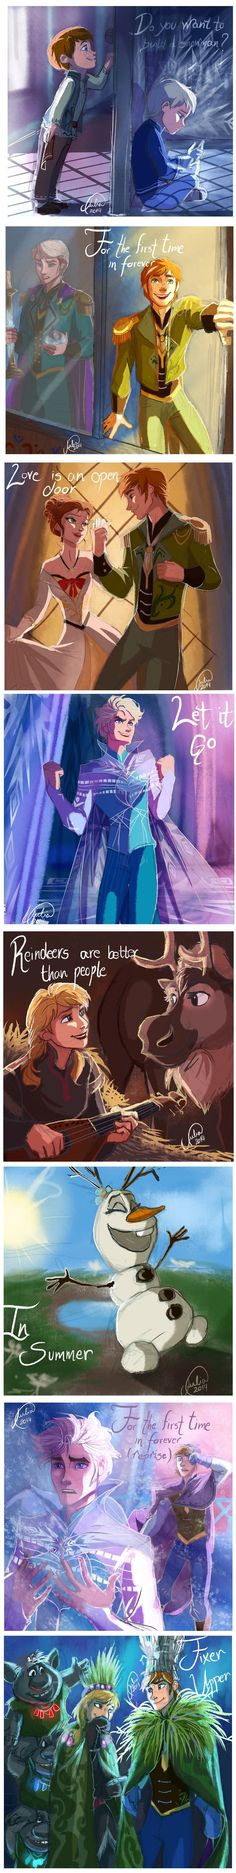 Frozen Songs Genderbend by on DeviantArt I especially like the fem!Kristoff is part of Disney - Disney Pixar, Walt Disney, Cute Disney, Disney Animation, Disney And Dreamworks, Disney Magic, Disney Frozen, Disney Characters, Disney Princes